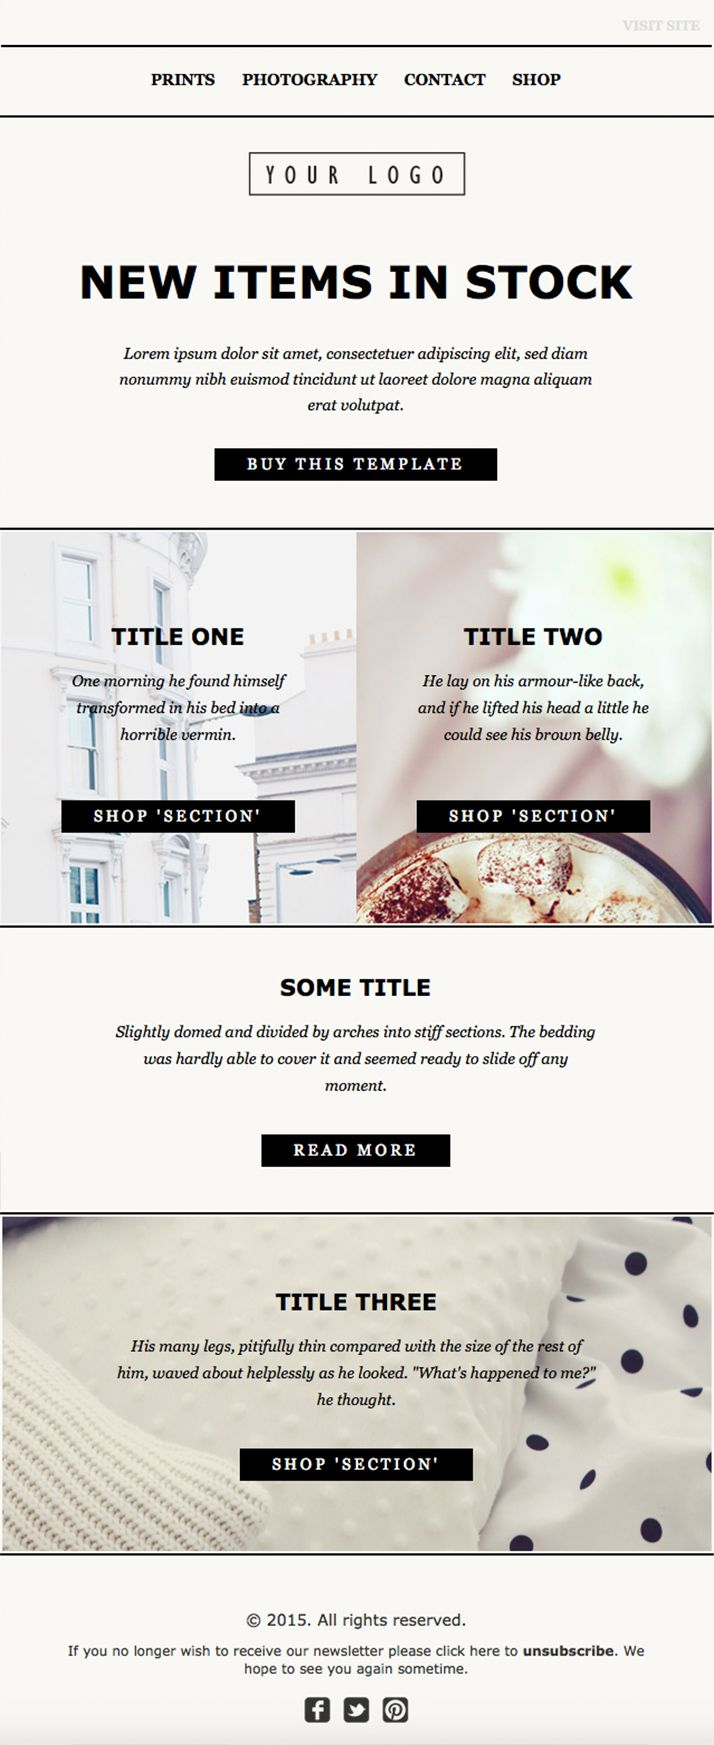 Online Email Newsletter Template Design Clean Html Code Mailchimp